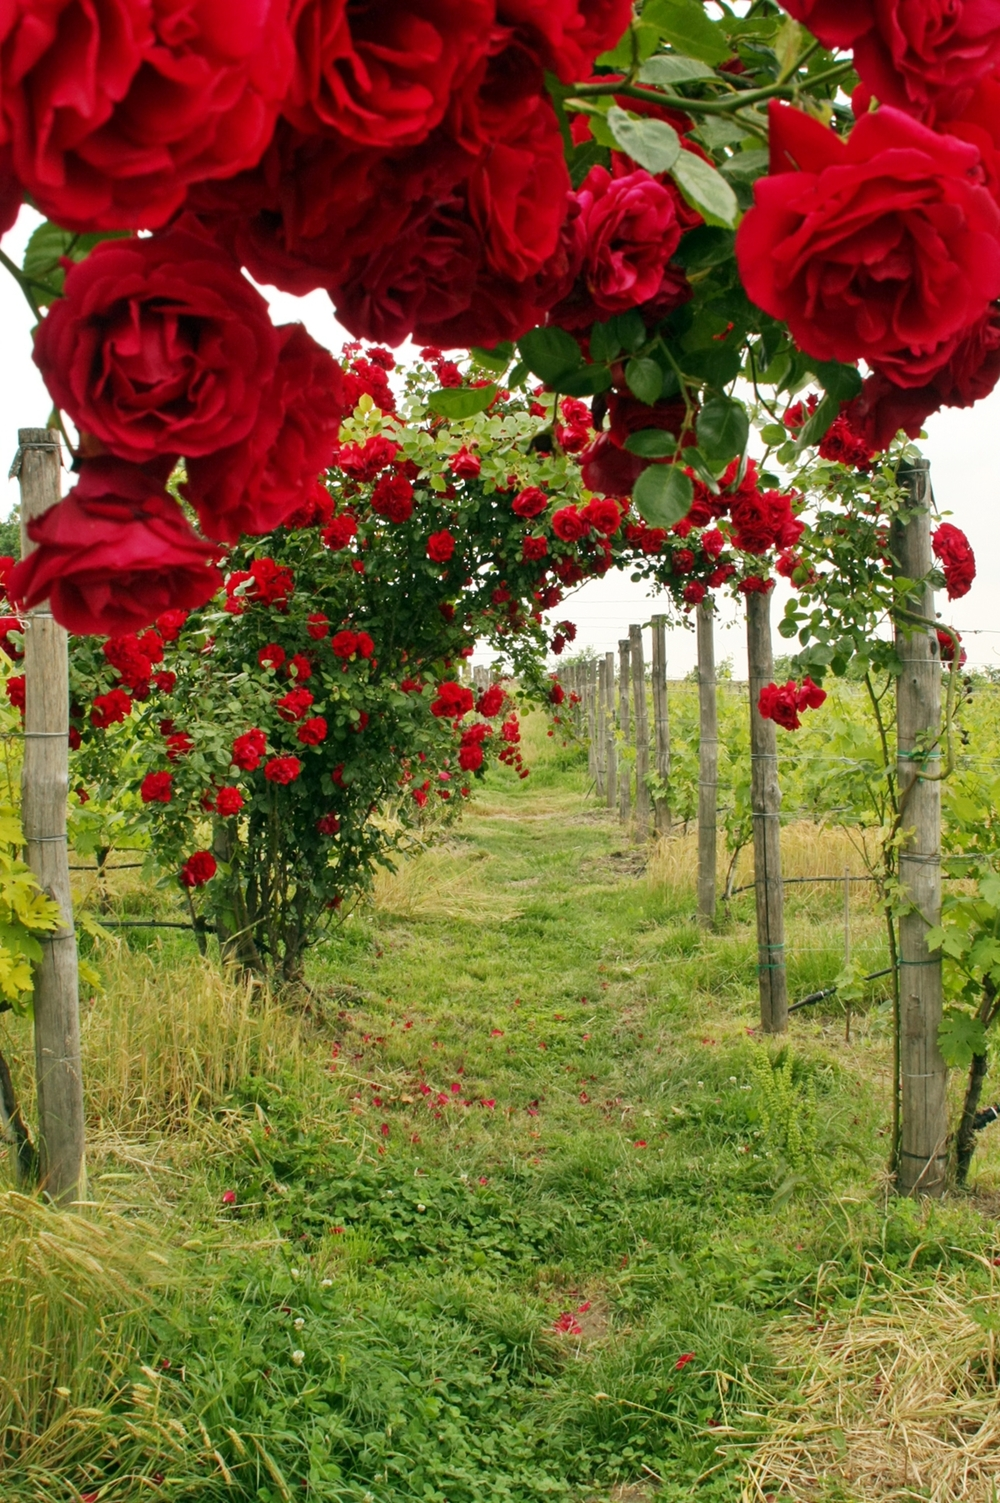 Roses in Vineyard